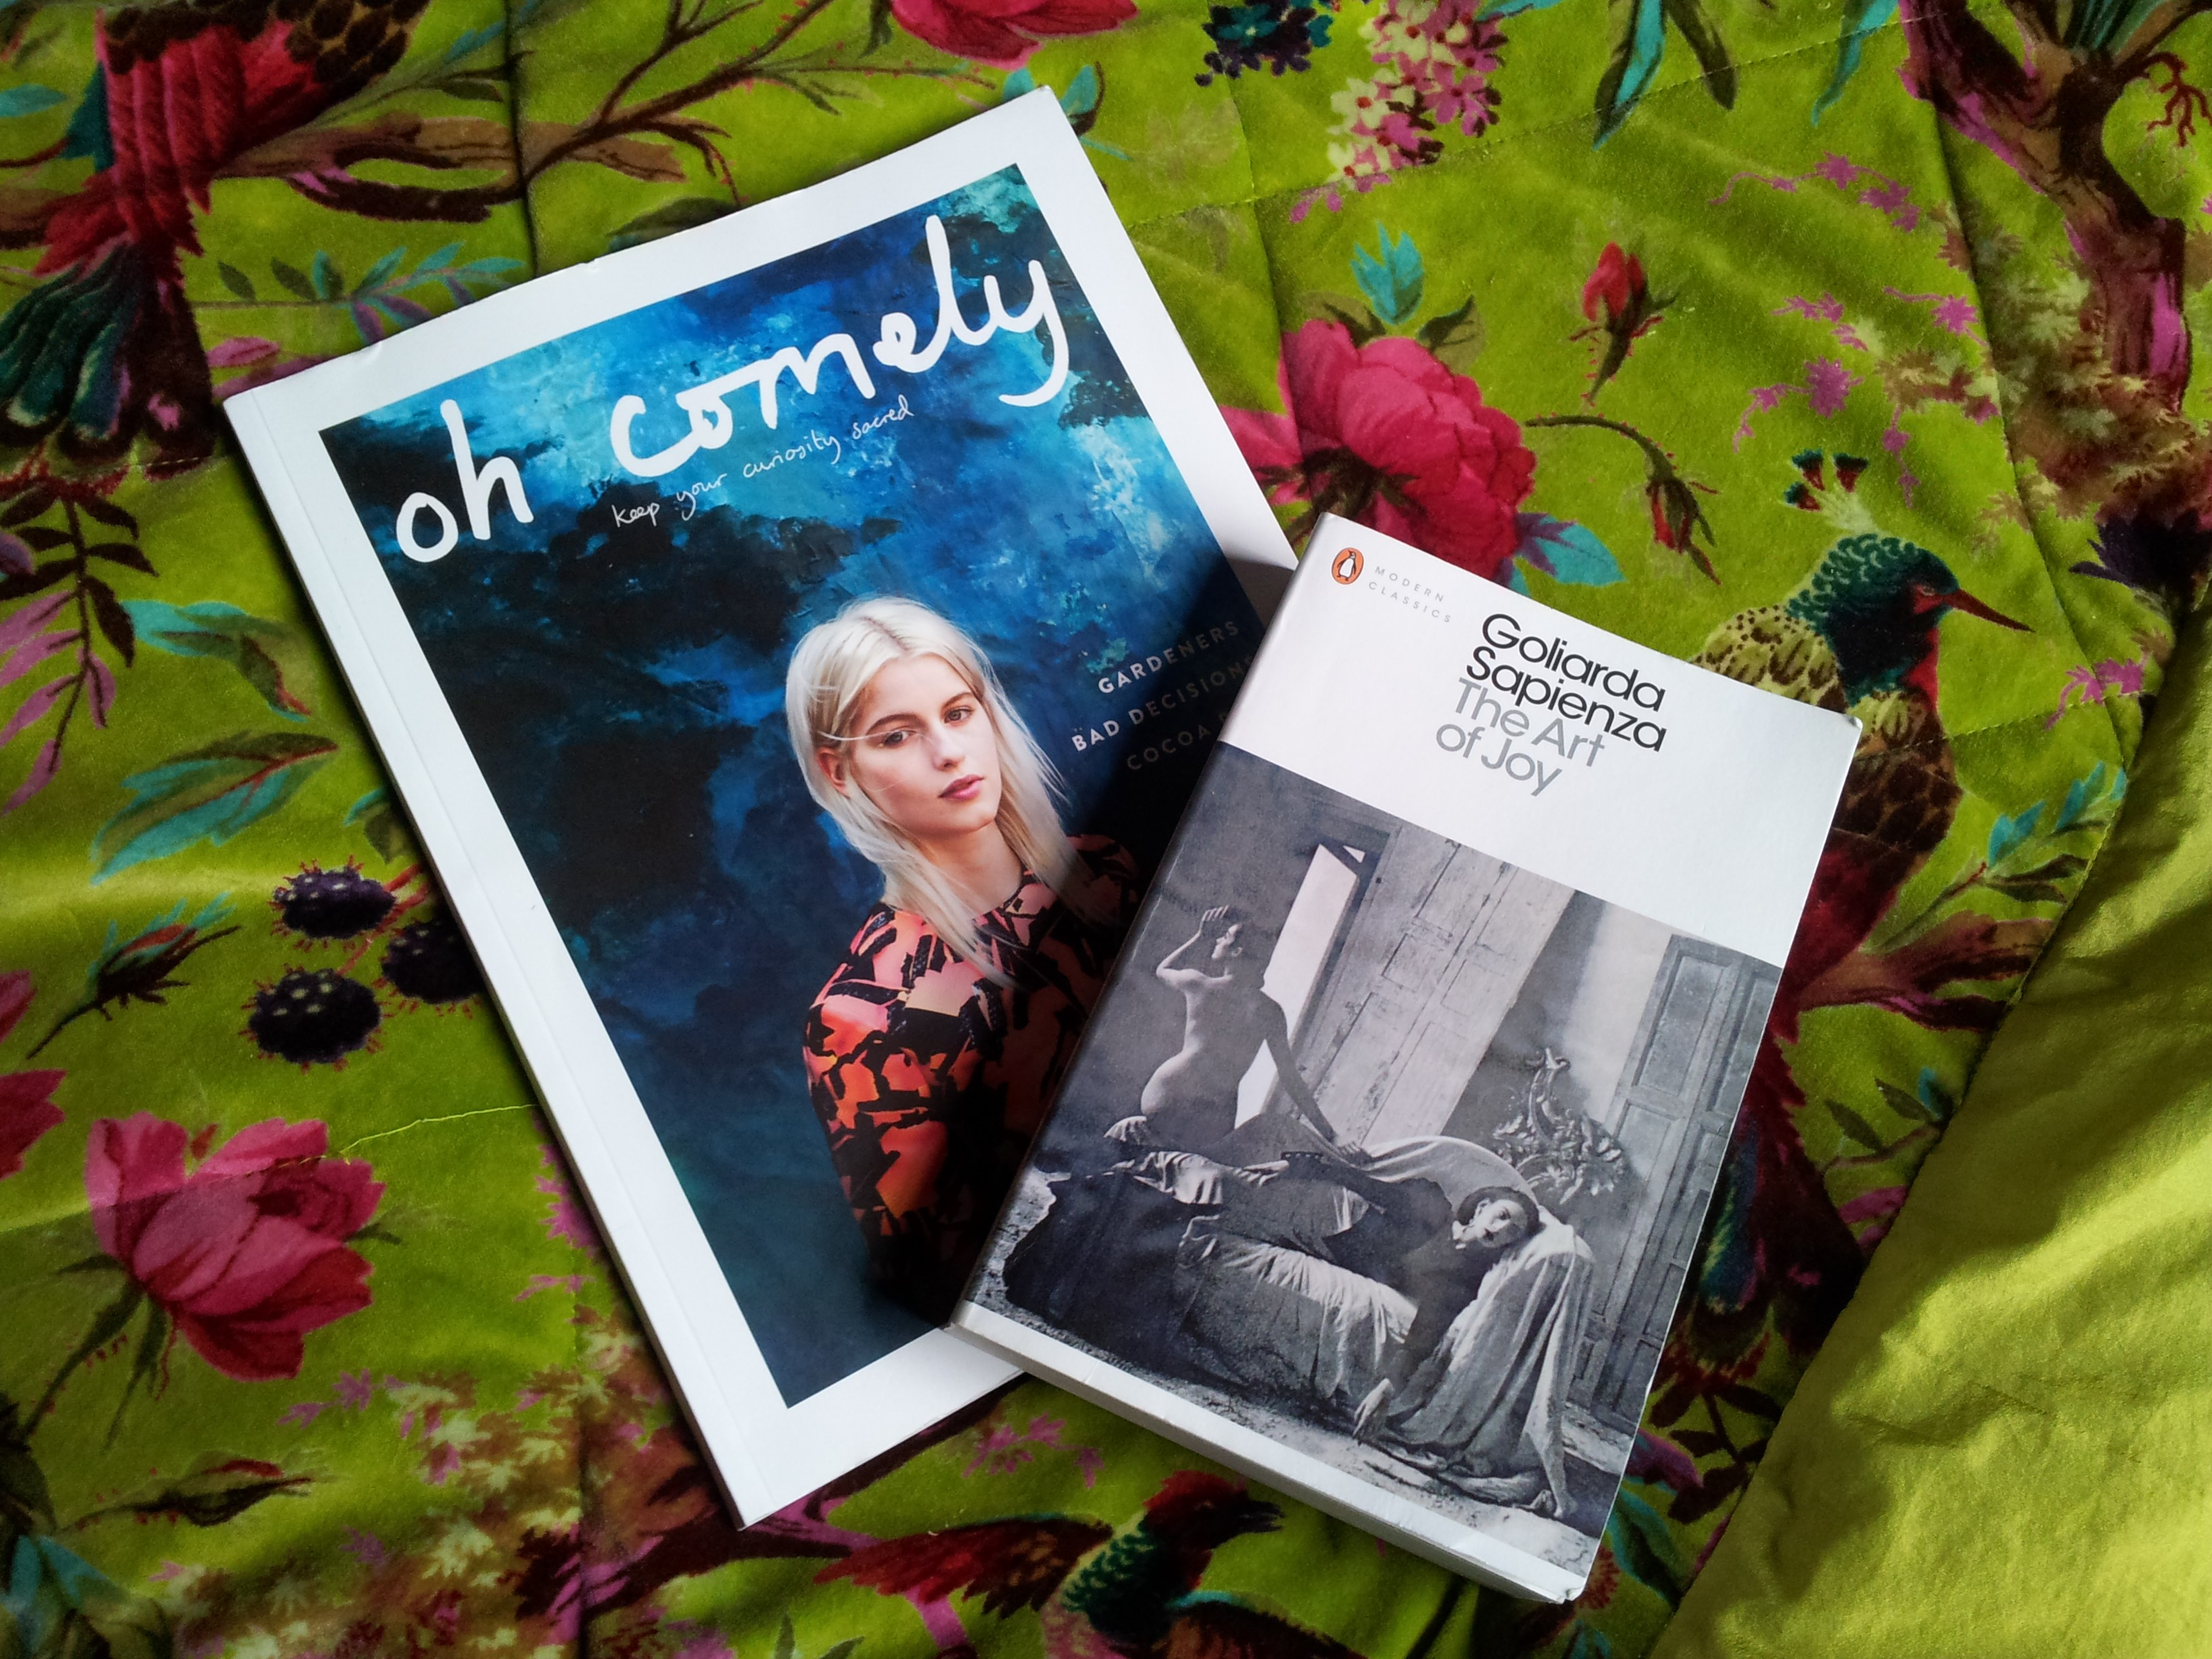 oh comely book club